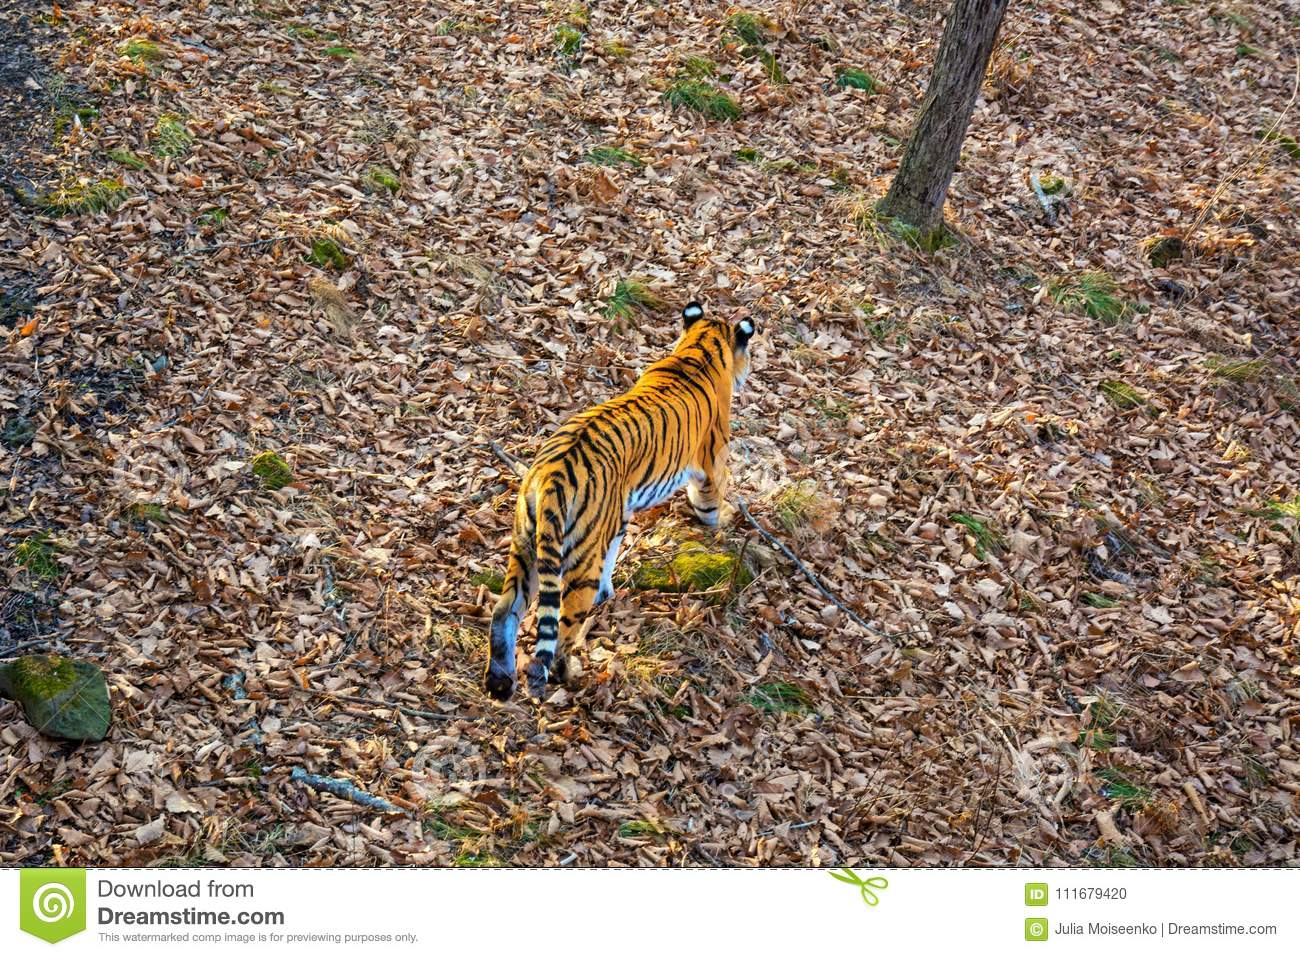 The Amur tiger is walking through the forest, taiga, autumn.